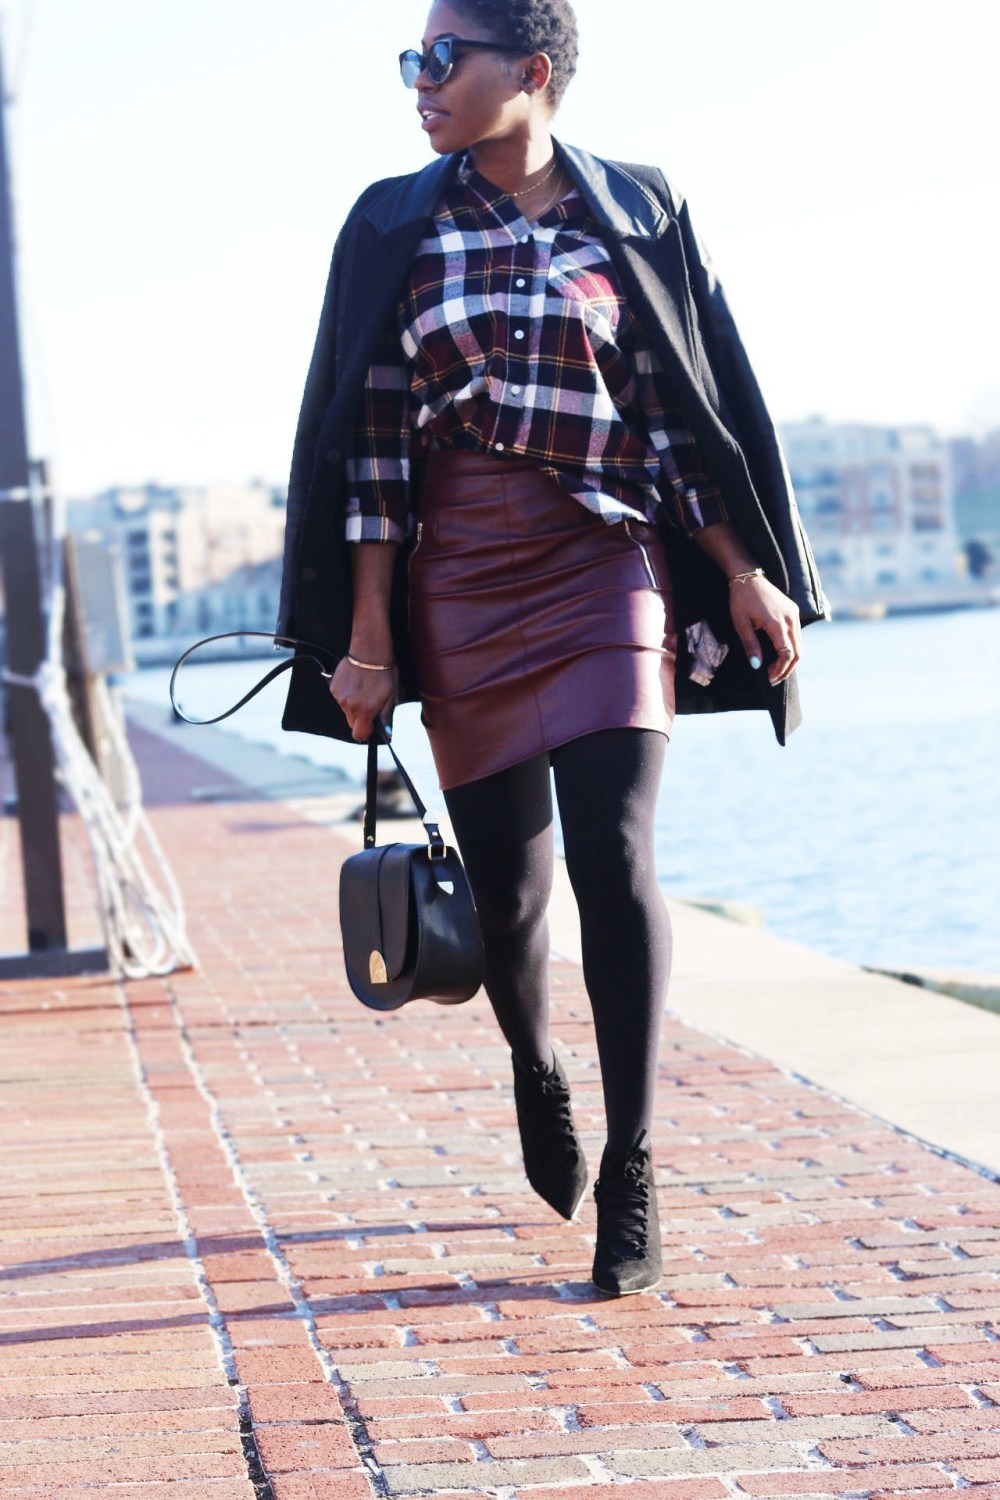 style-synopsis-winter-mini-skirt-plaid-shirt-look